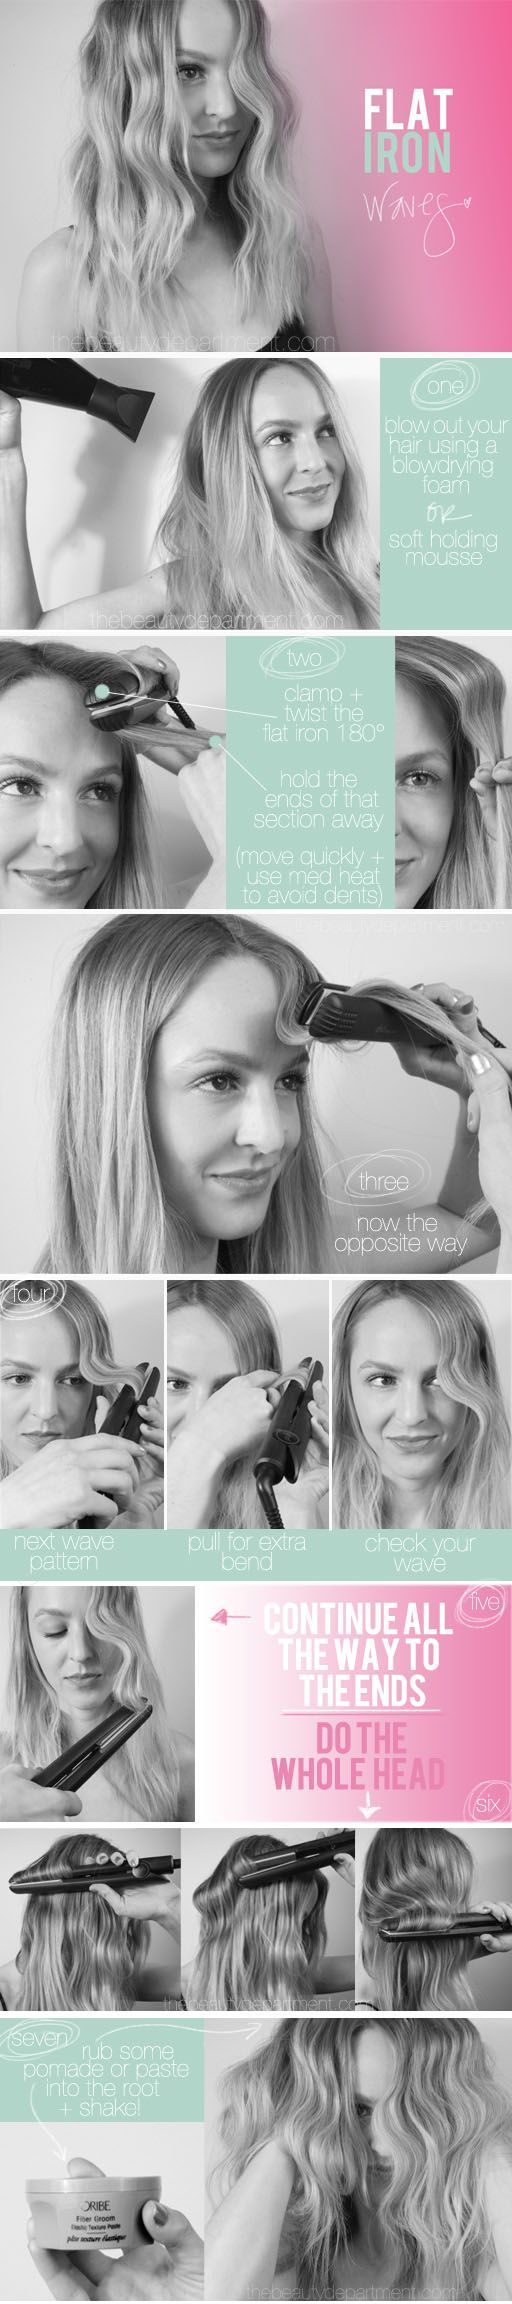 How-to: Flat Iron Waves (with the help of